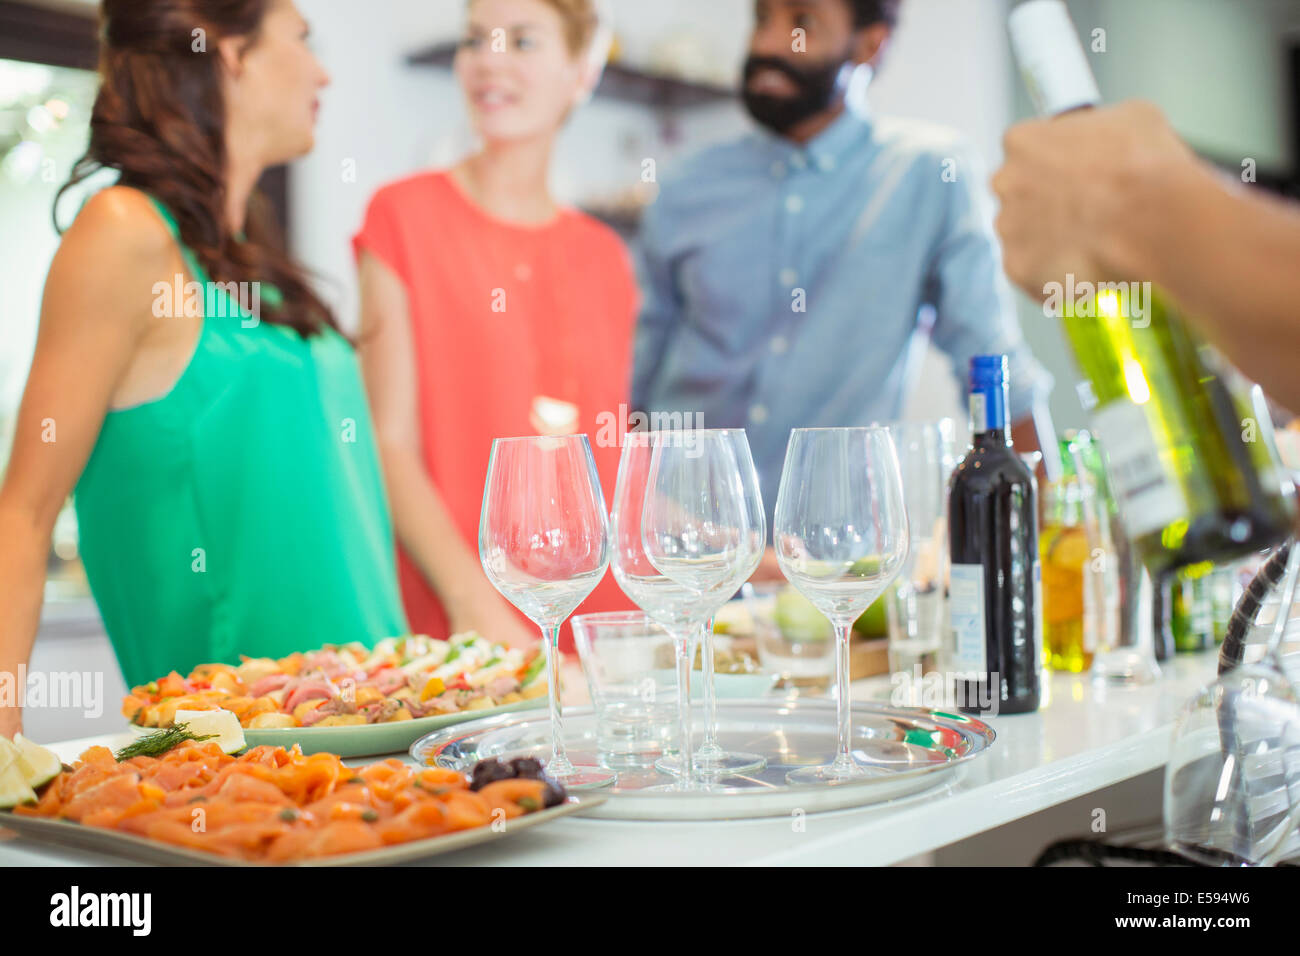 Food and wine on table at party - Stock Image